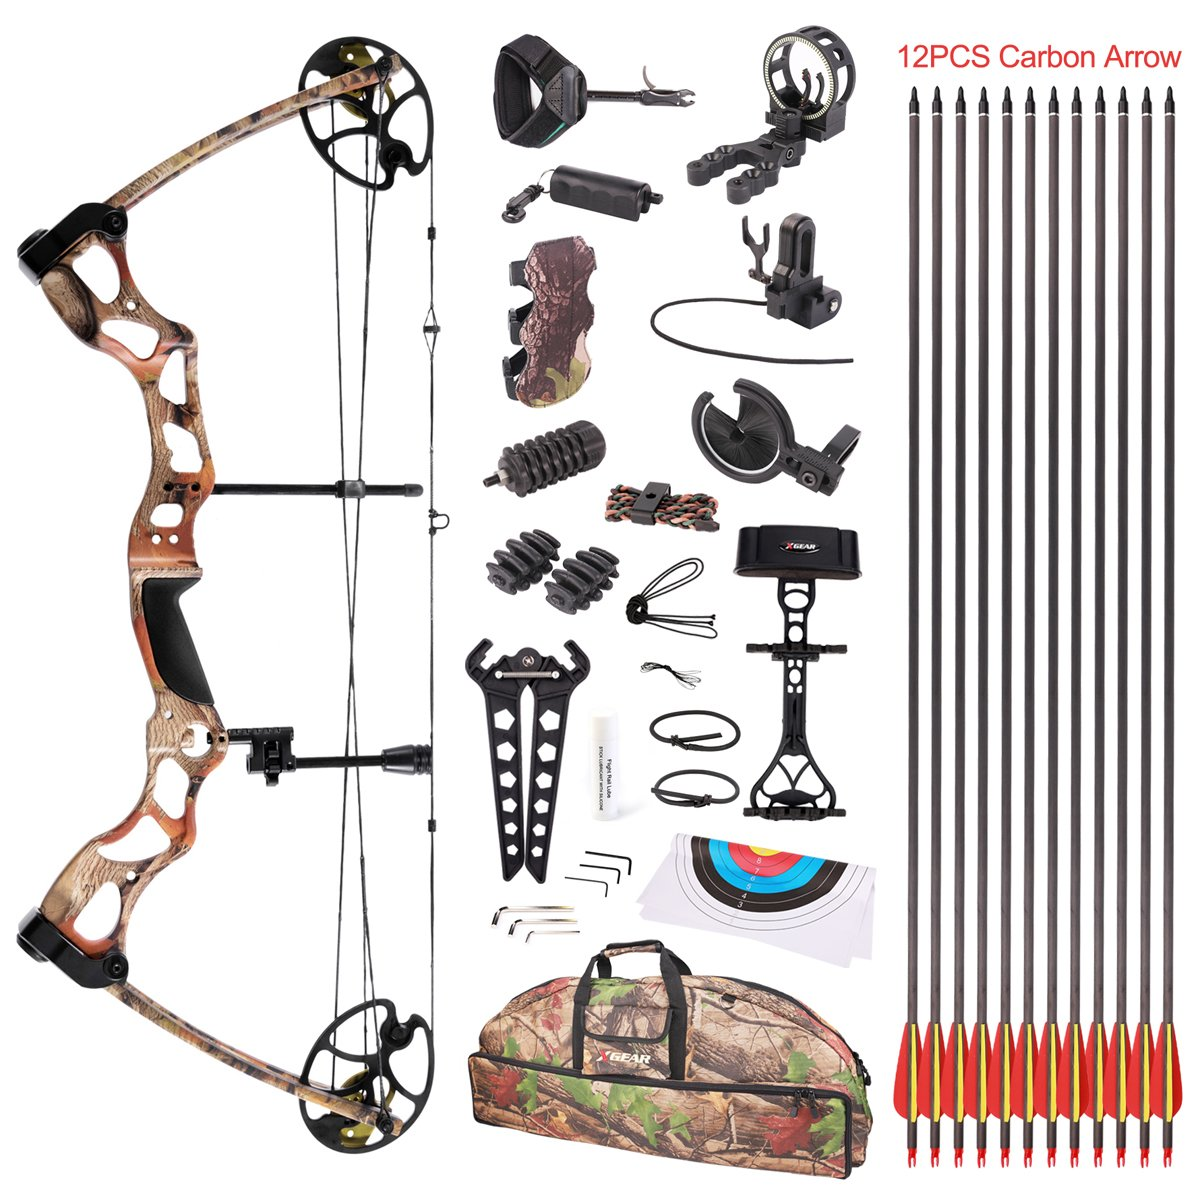 Leader Accessories Compound Bow Hunting Bow 50-70lbs with Max Speed 310fps (Autumn Camo with Full Accessories)